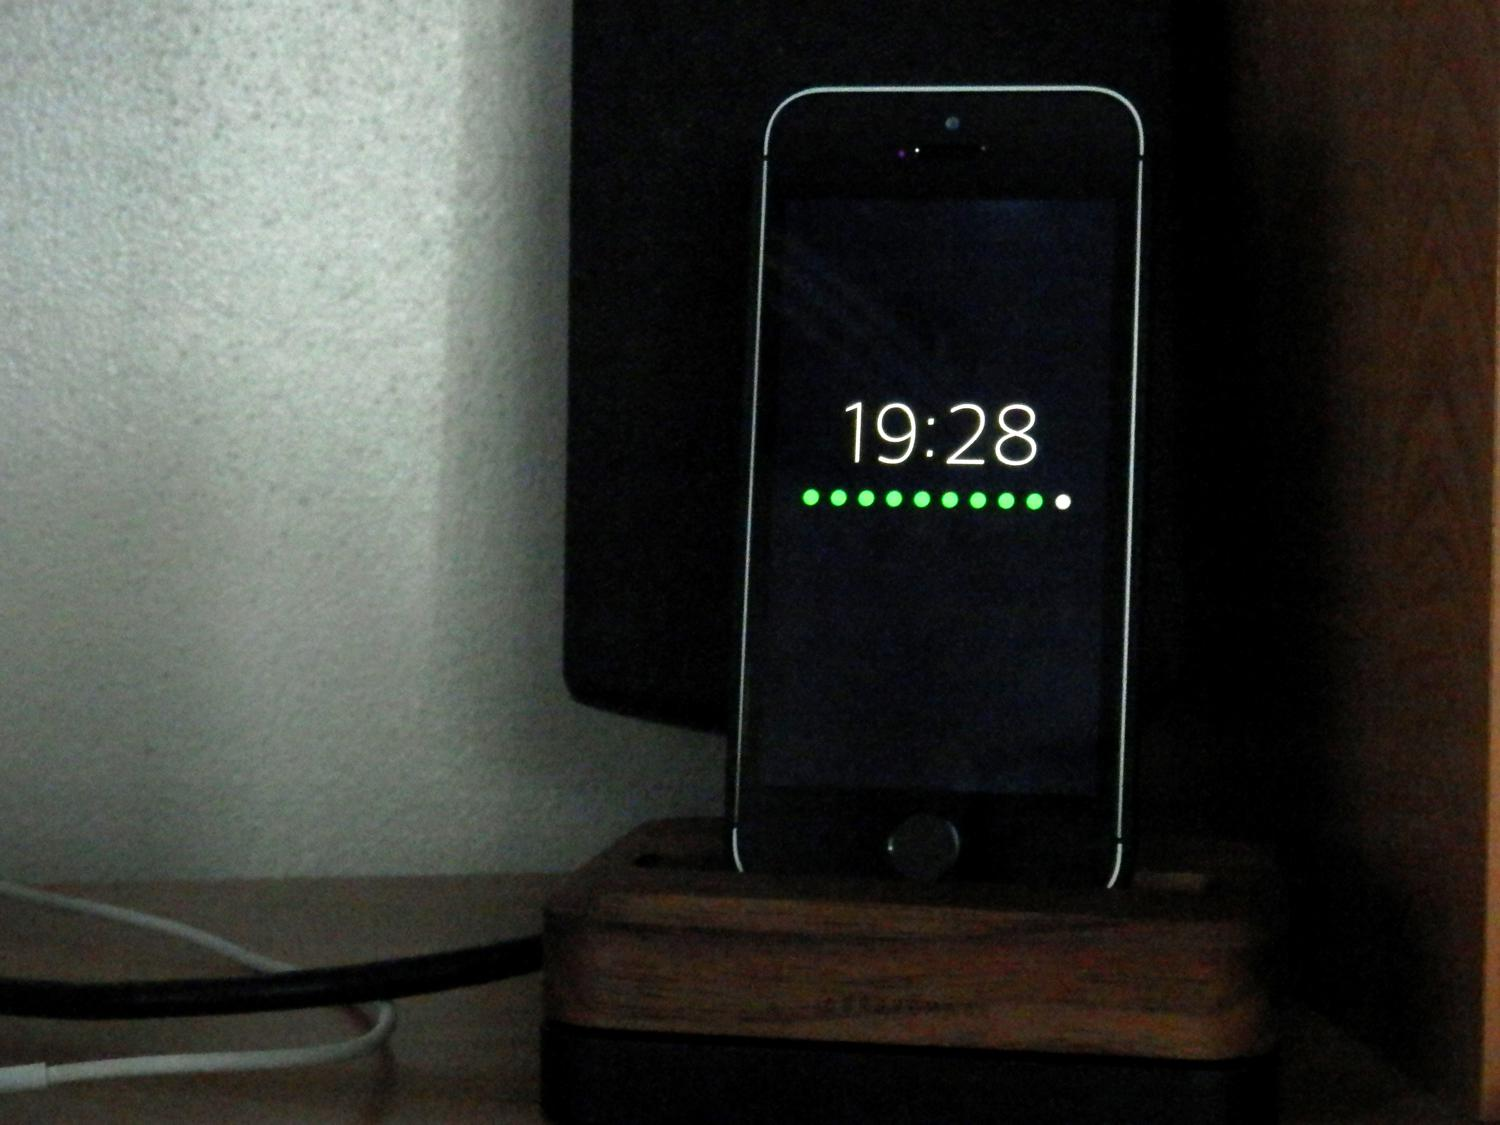 iphone 6s live wallpaper battery